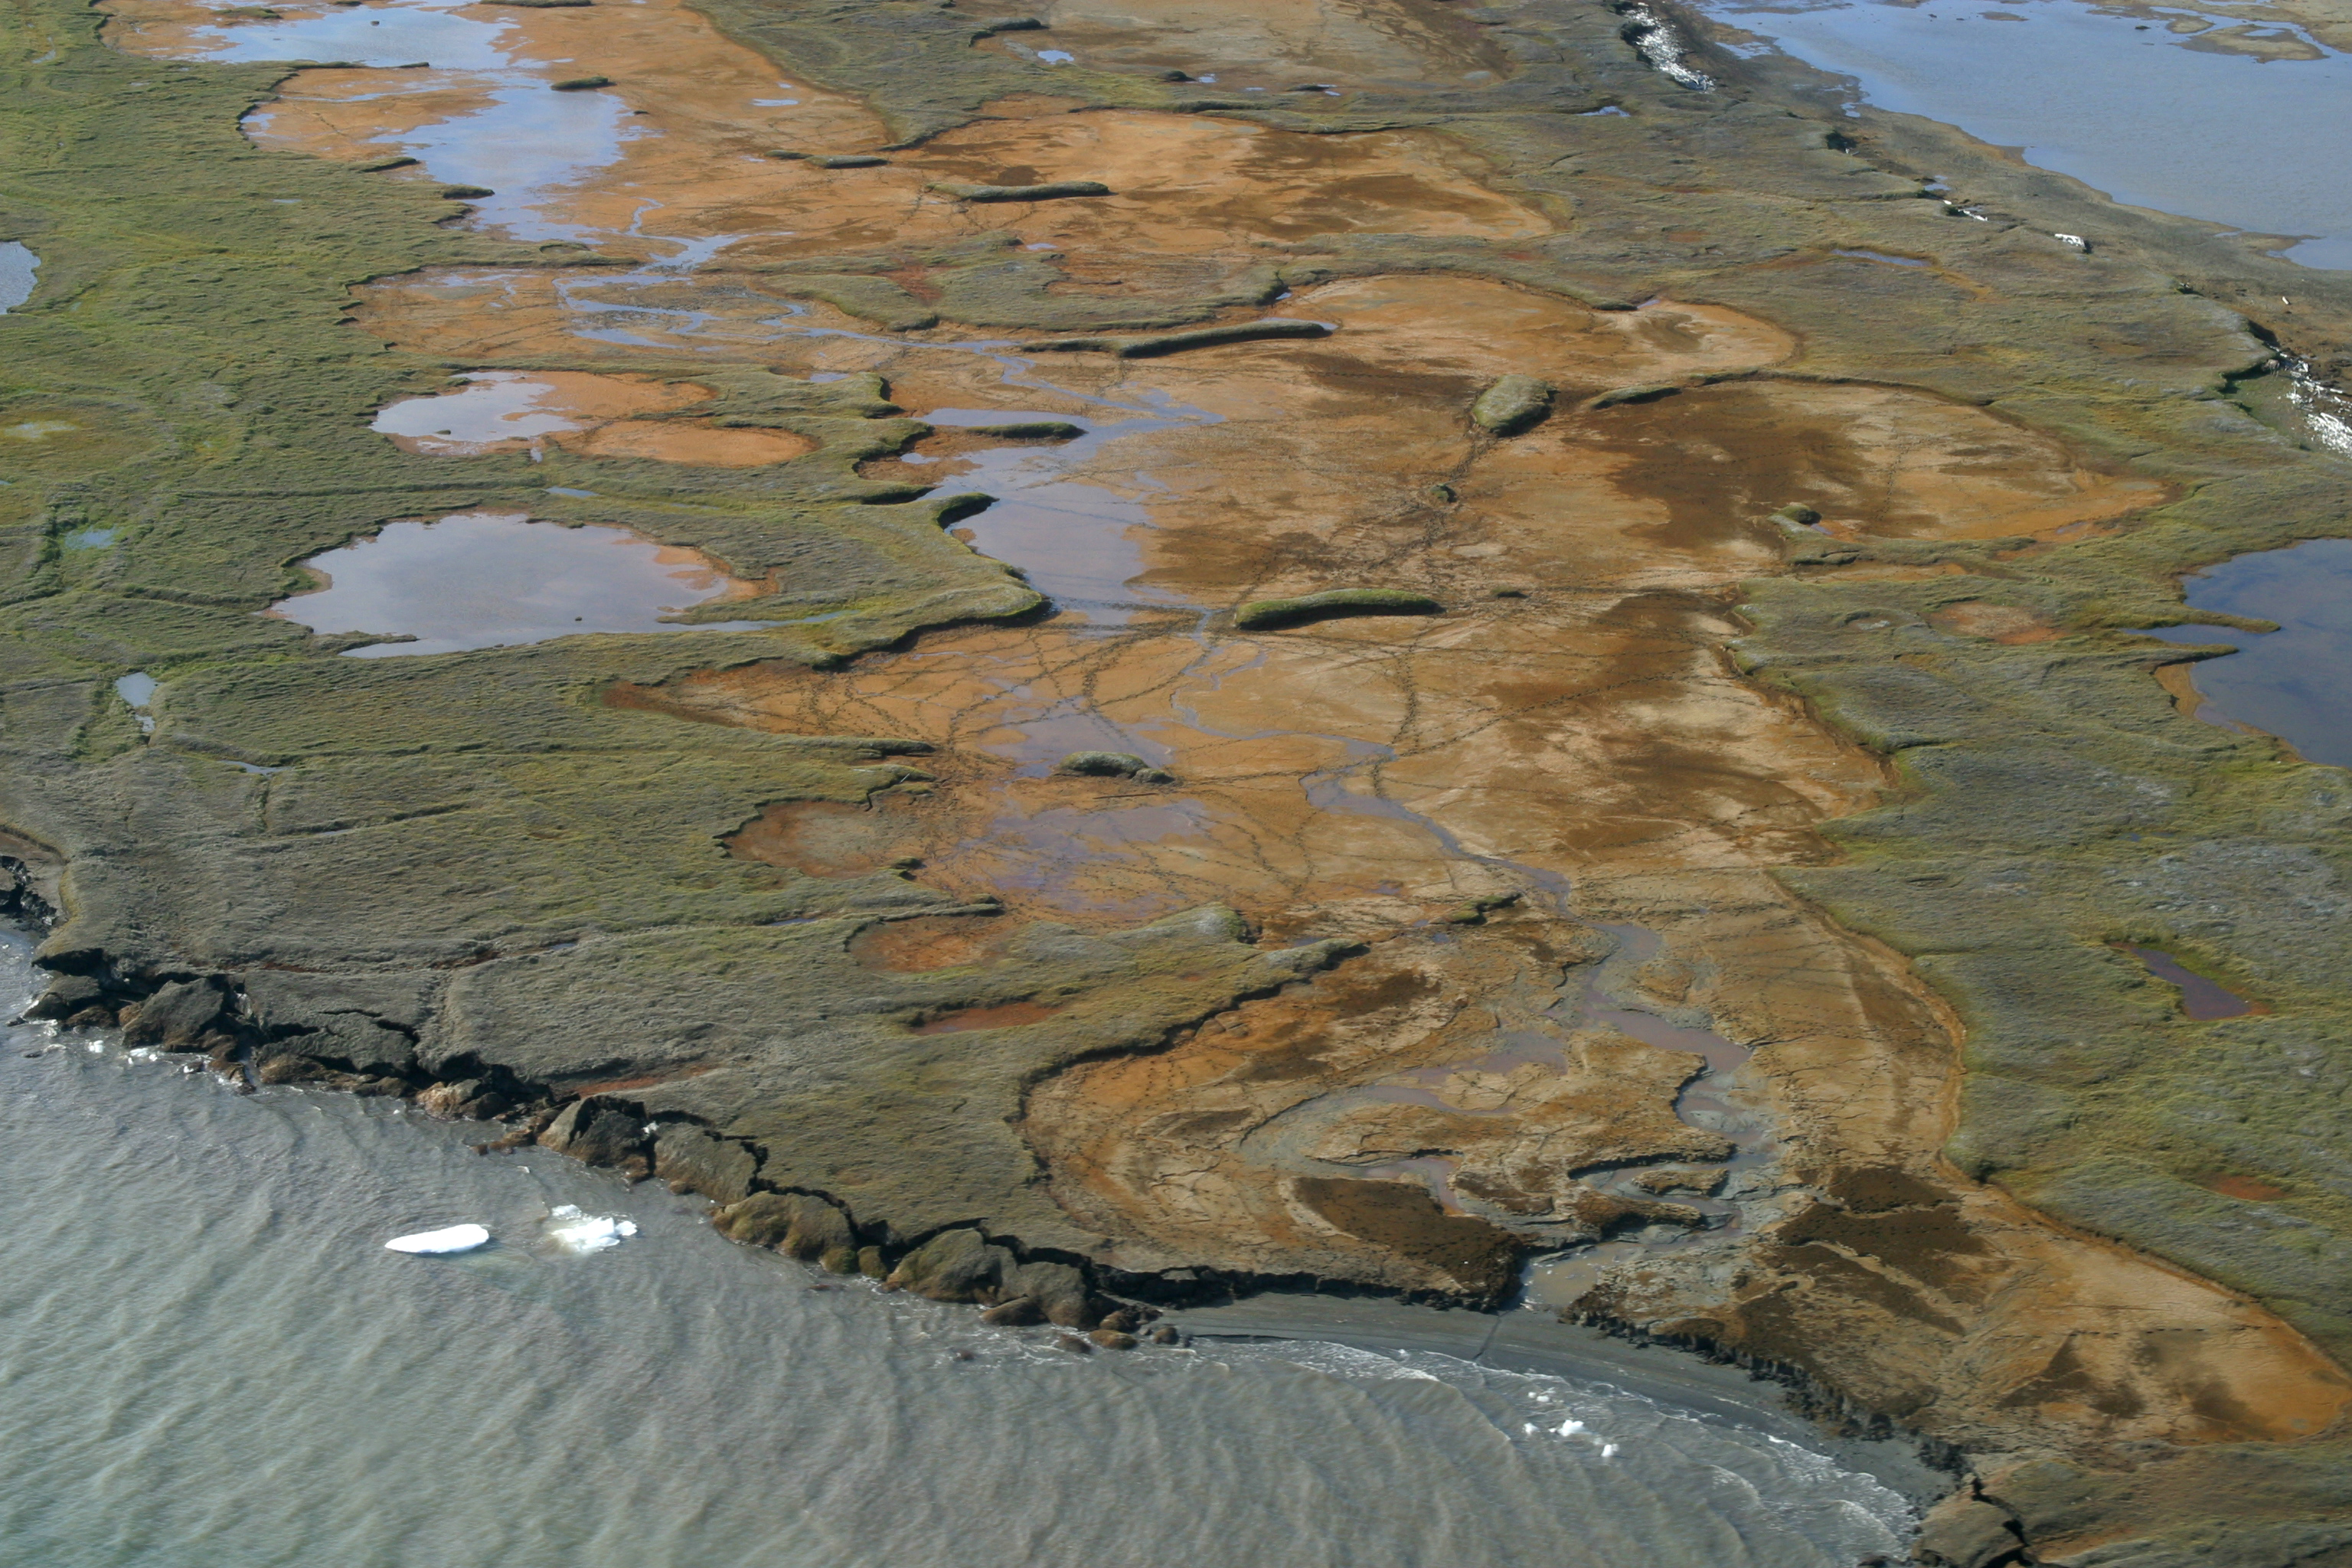 Drones are changing how Canadian scientists monitor Arctic climate change